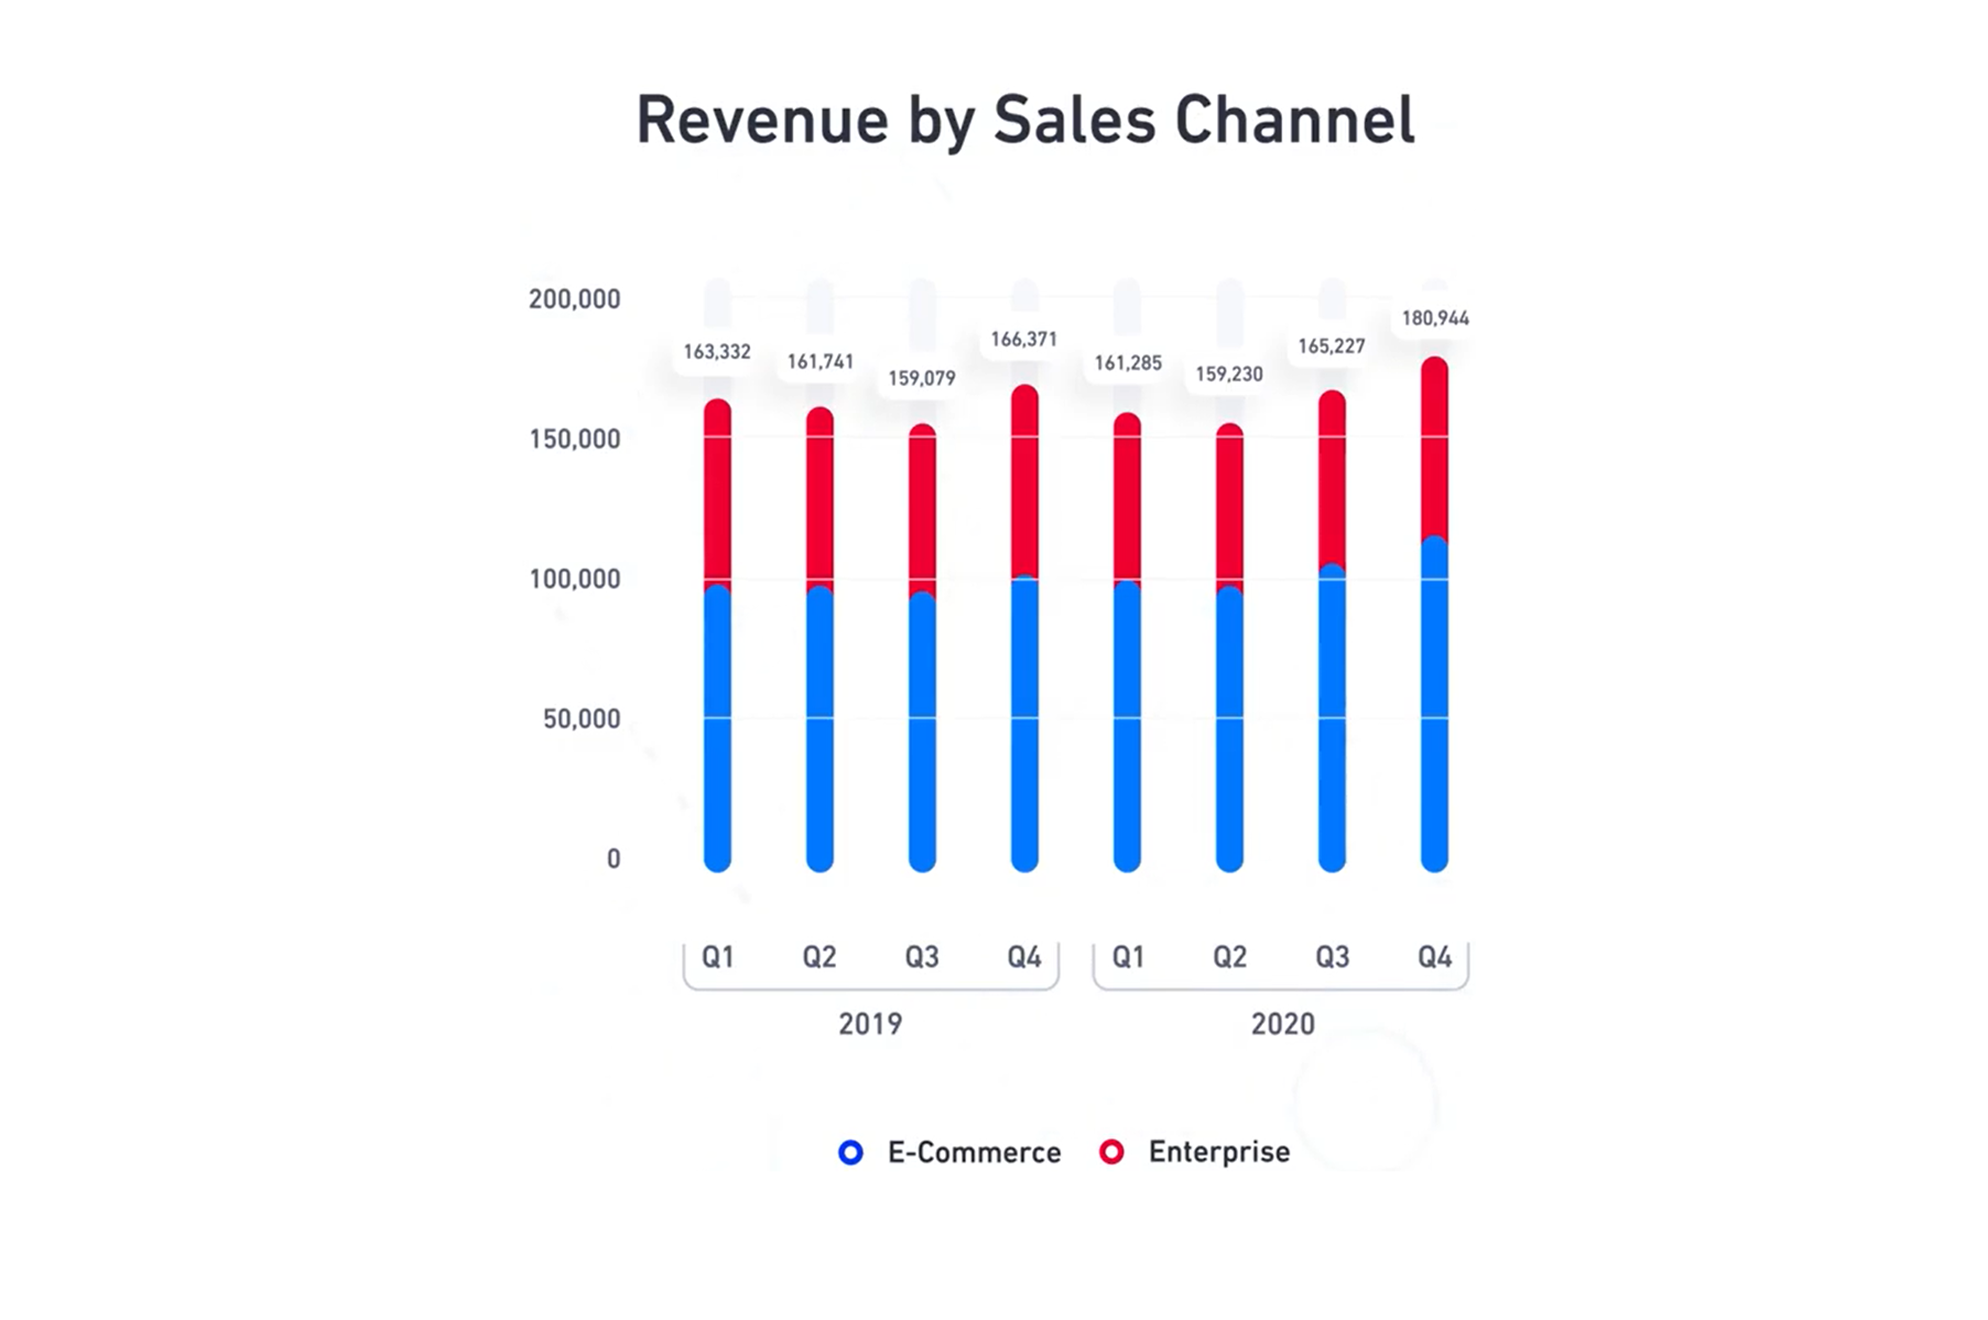 Revenue by Sales Channel